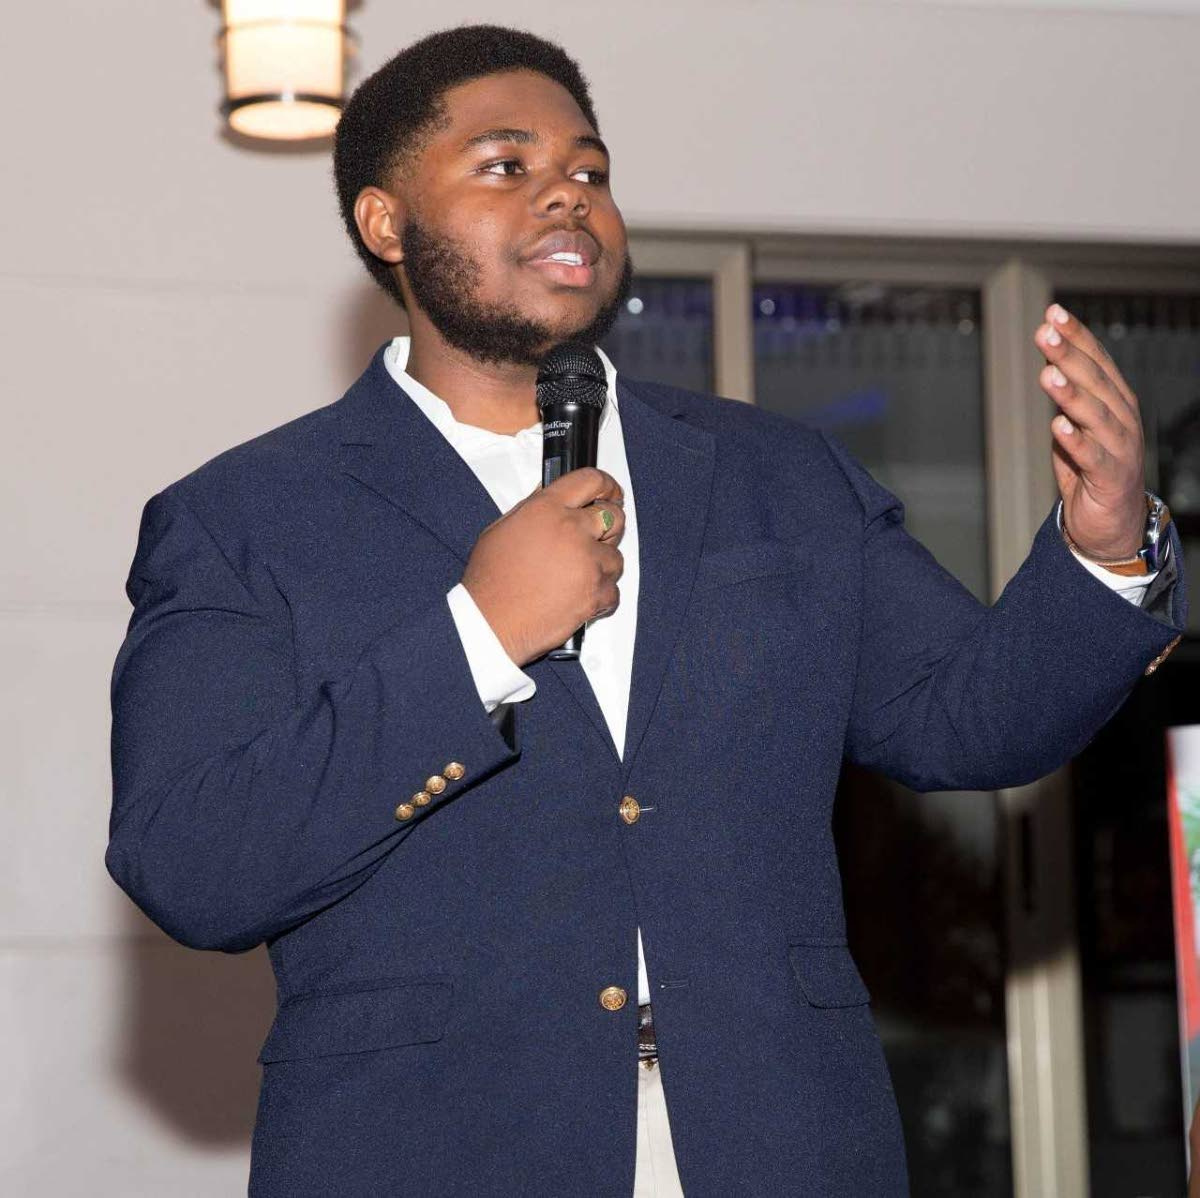 ALMA Diamond Scholar for 2018-2019 Yohance Huggins-Charles delivers acceptance remarks for the $100,000 KCV scholarship in May. He will use the funds for studies at Carleton University in Canada.